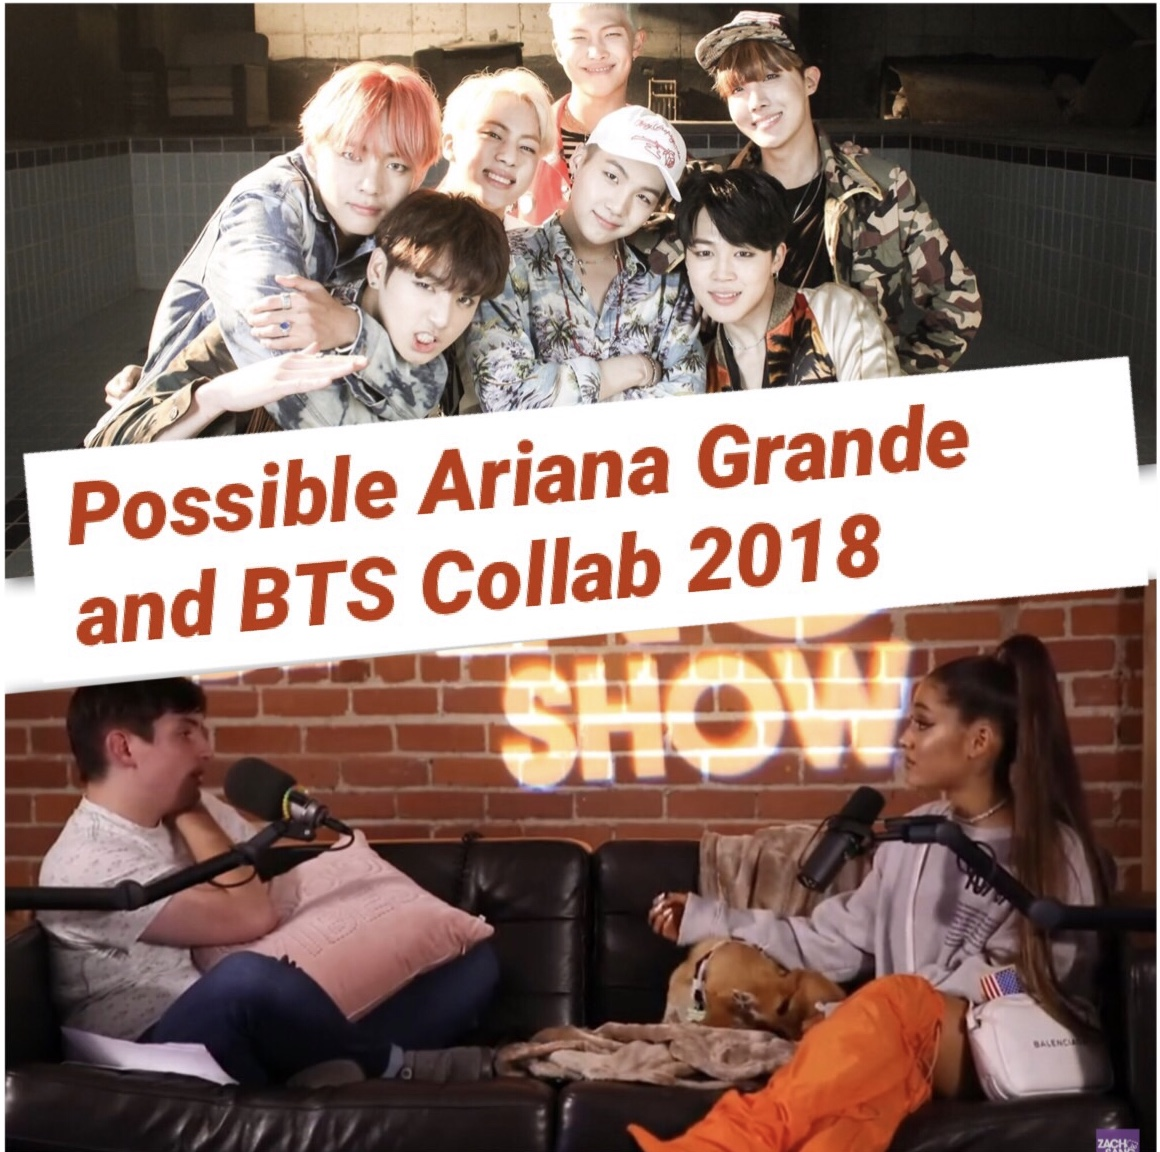 Possible Ariana Grande and BTS Collab 2018??